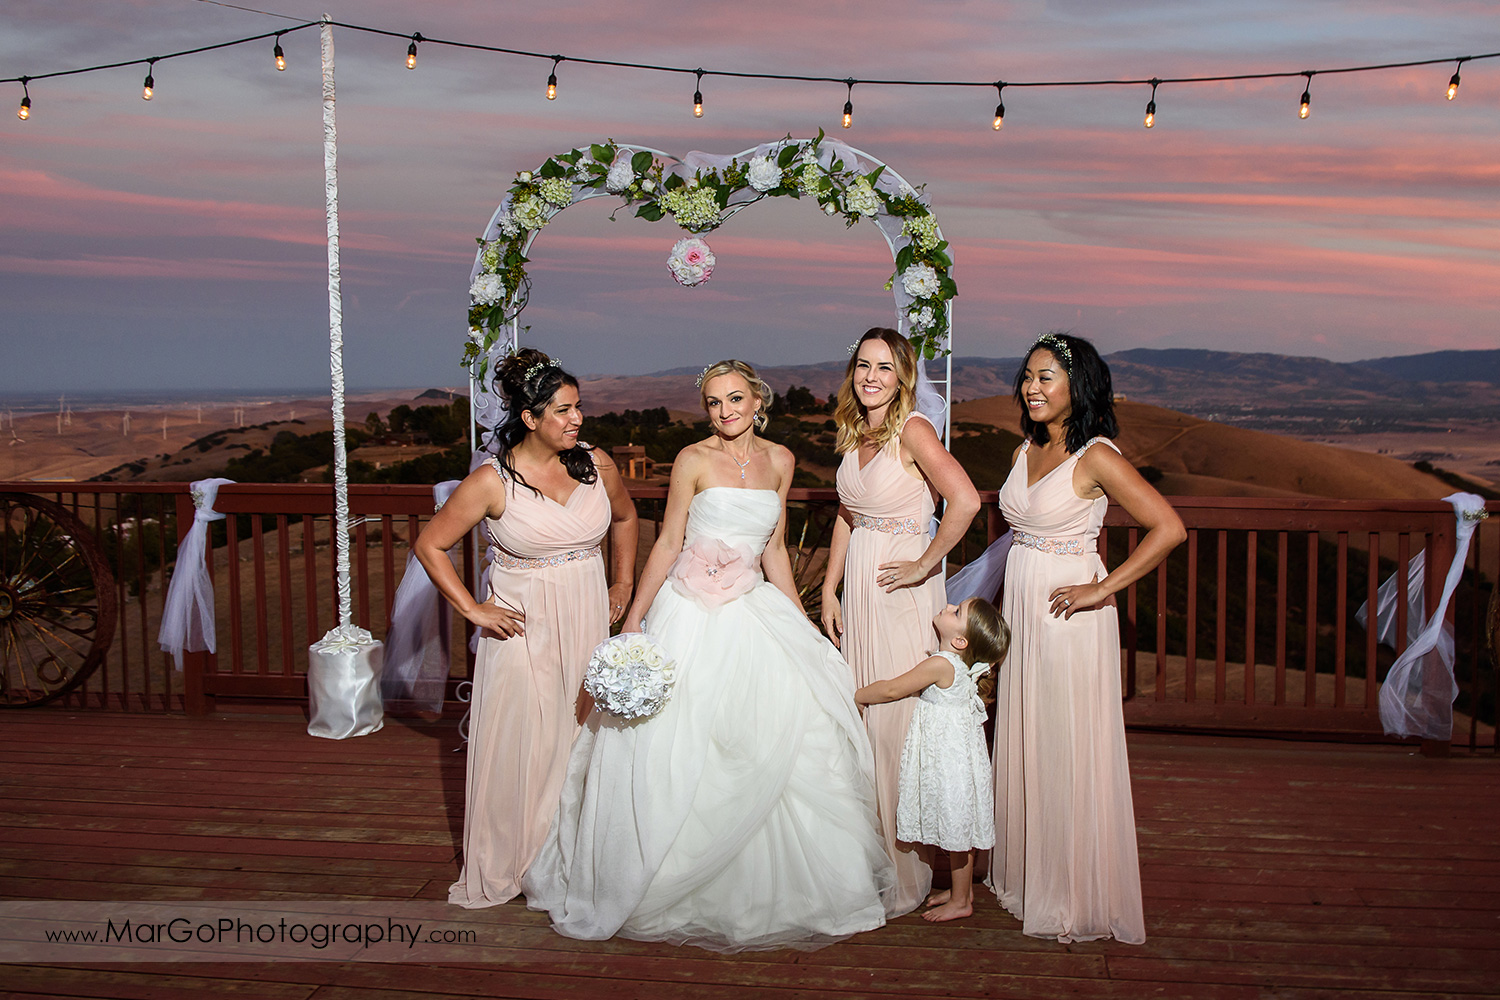 bride and bridesmaids on the backyard deck with sunset hills view